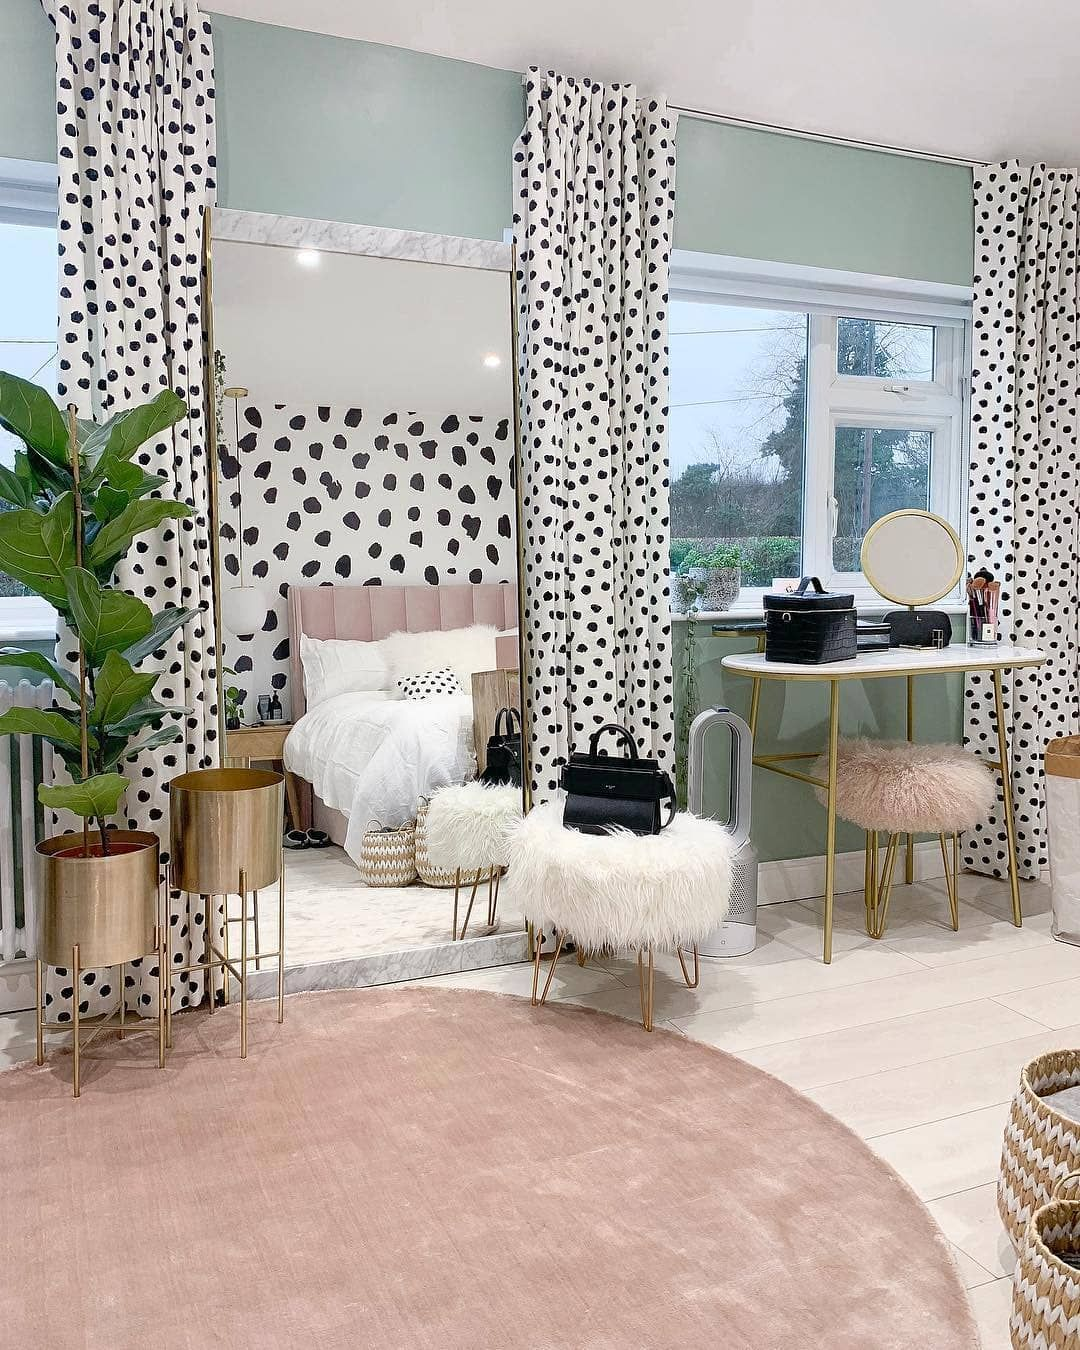 West Elm Uk On Instagram If You Re Partial To A Dalmatian Print Then Lustliving S Bedroom Makeover Is The One F Bedroom Makeover Cheap Home Decor Home Decor,Subway Tile Backsplash Ideas For Granite Countertops